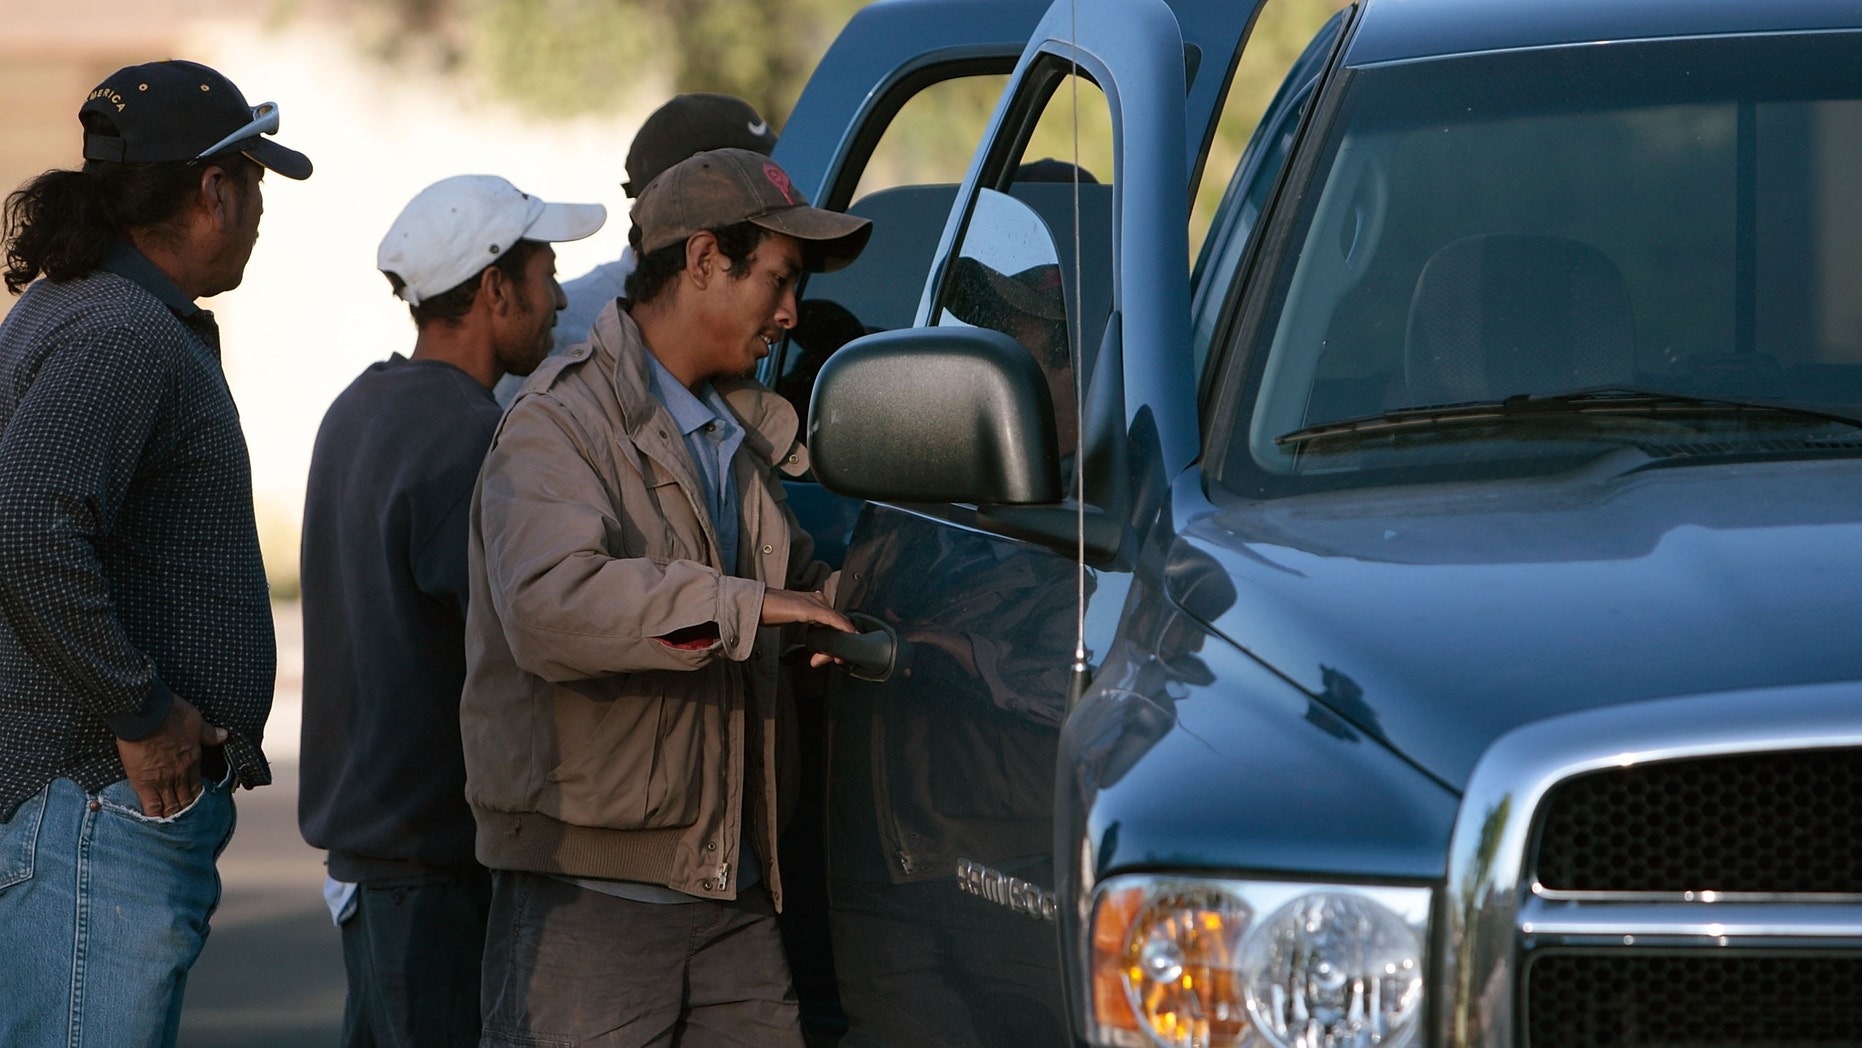 TUCSON, AZ - APRIL 05:  Hispanic day laborers open the doors to a truck as a man hires them to work manual labor April 5, 2008 in Tucson, Arizona.  Manual laborers, mostly undocumented workers from Mexico, frequent this corner in Tucson every morning before dawn, in an informal arrangement with local employers, who can pick up as many as they need for day-long jobs.  Much of the work up to now has been housing-related; but with the housing downturn, that work has largely dried up, and these laborers now often don't work more than once a week.  (Photo by Chris Hondros/Getty Images)